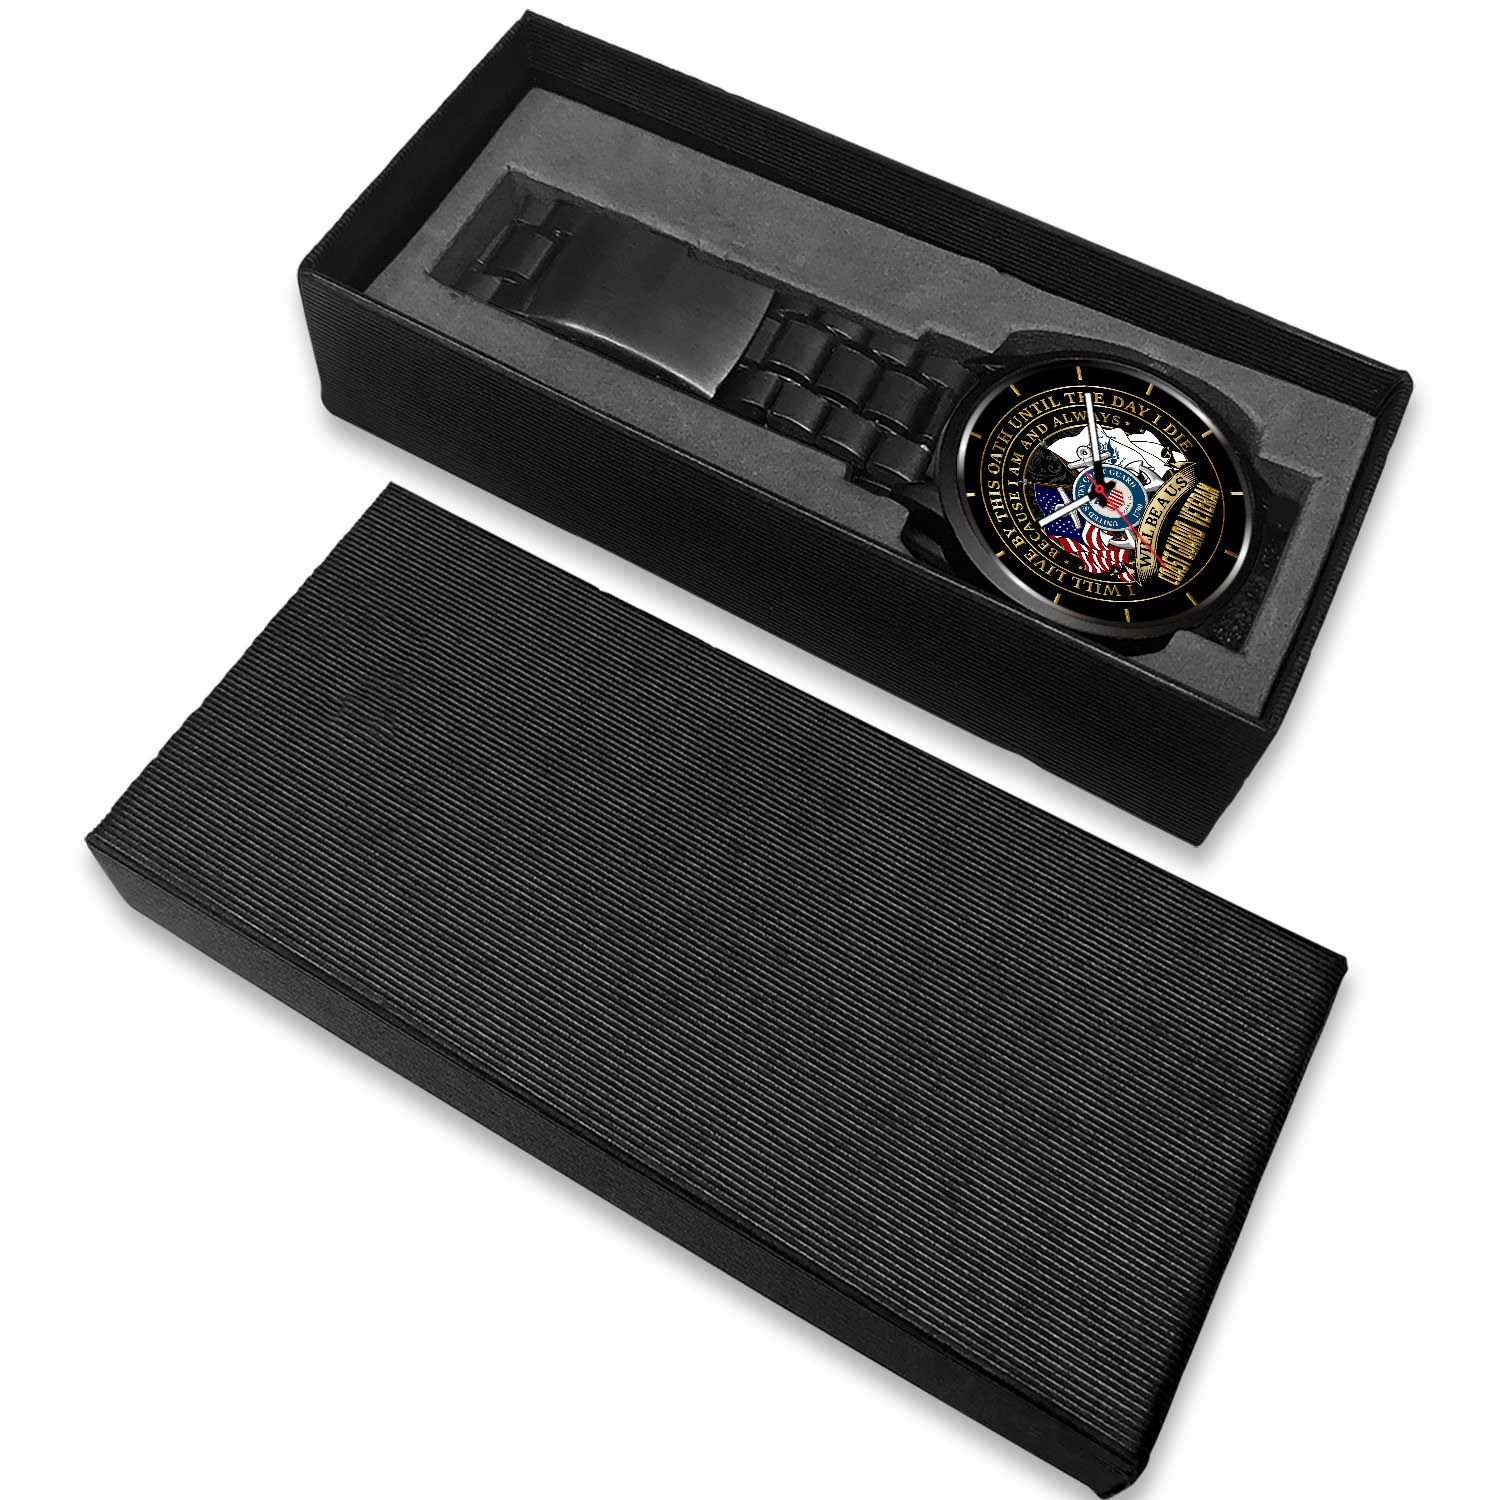 i-will-live_488790a3-d795-f8fa-0497-1278b0ff1ce7 I WILL LIVE BY THIS OATH UNTIL THE DAY I DIE BECAUSE I AM AND ALWAYS WILL BE A U.S COAST GUARD VETERAN WATCH  %tag